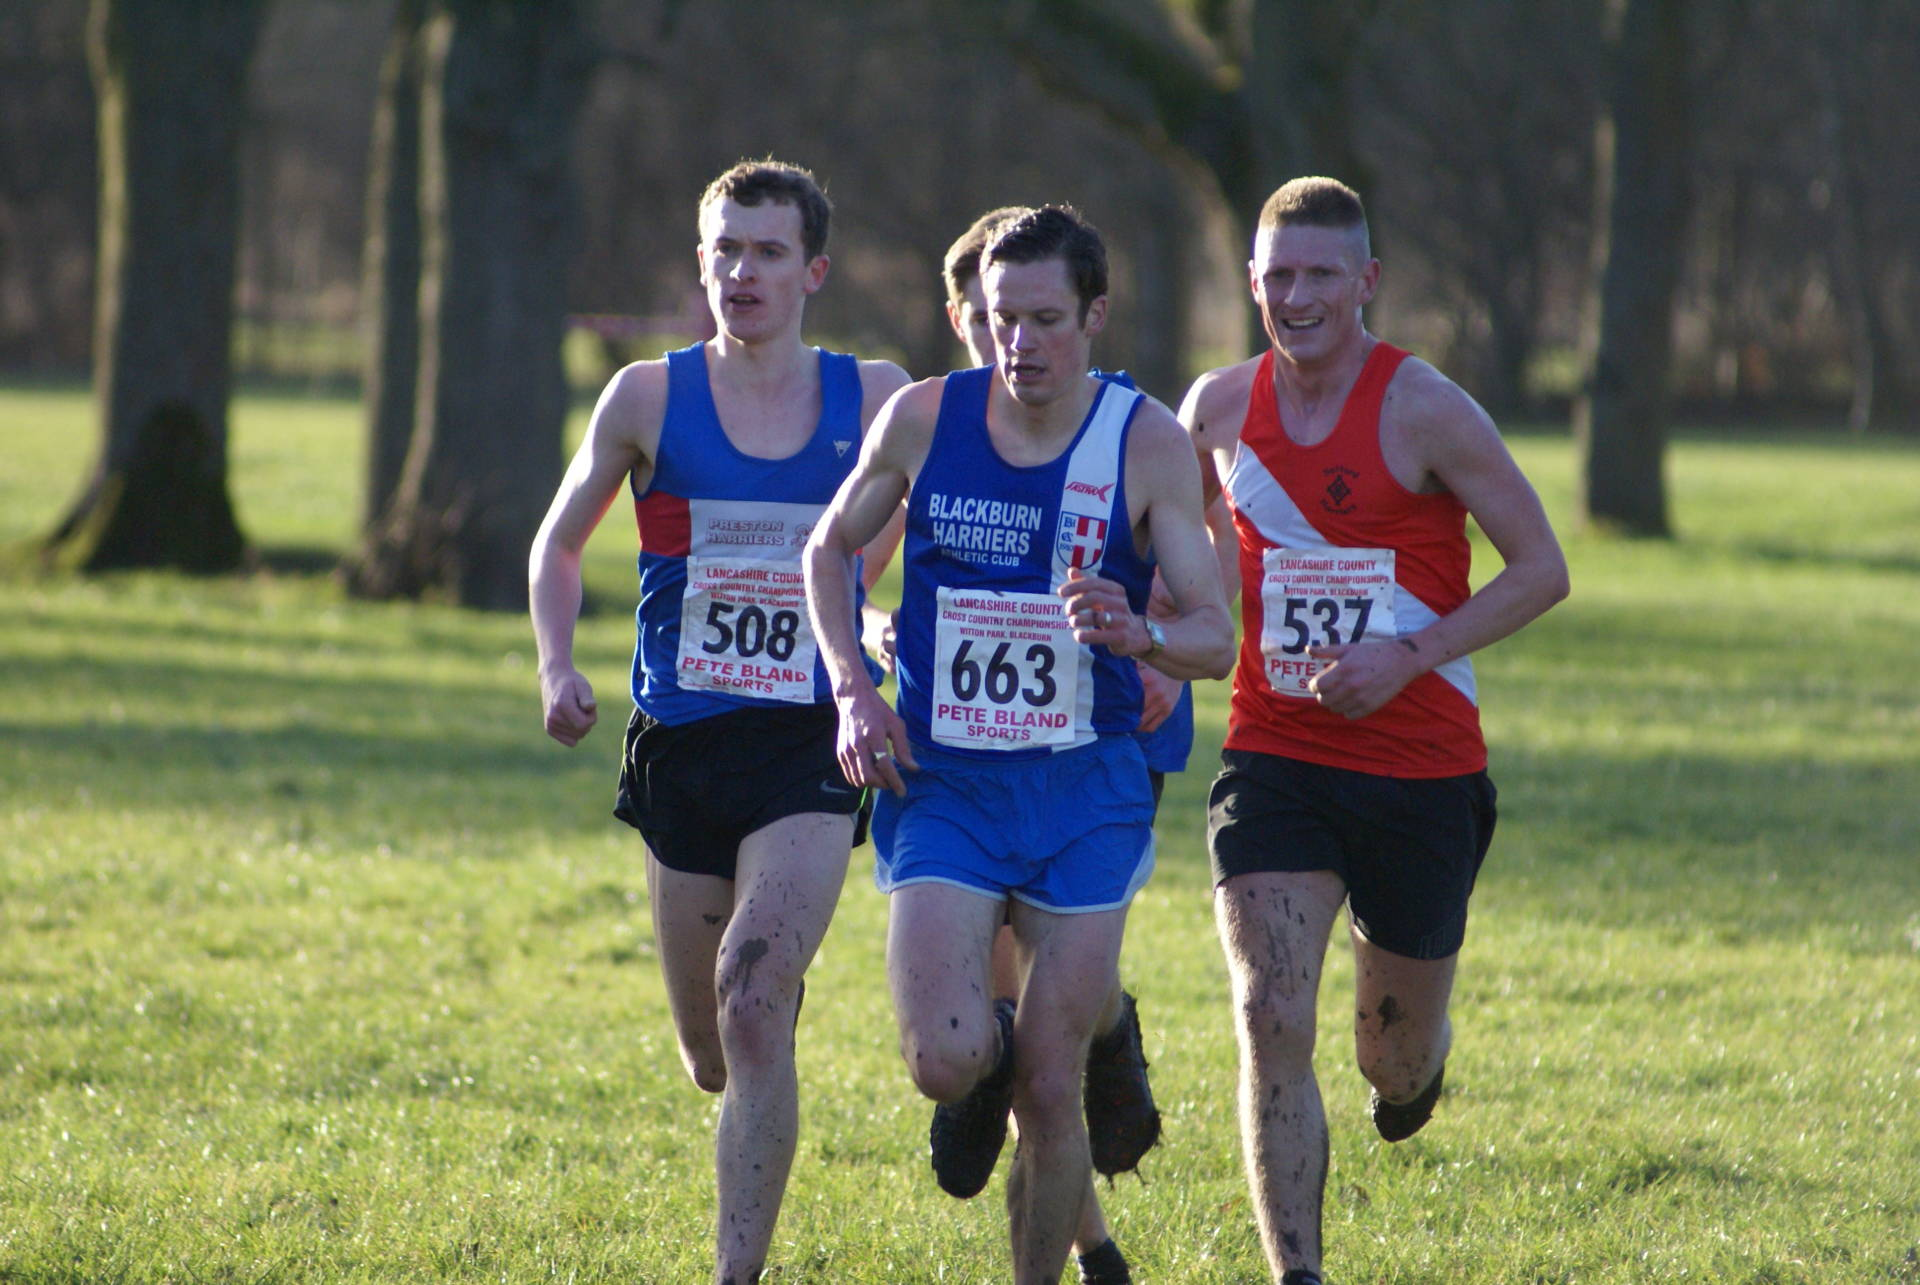 Great day for the Harriers winning twenty Team and Individual Medals at Lancashire Cross Country Championships